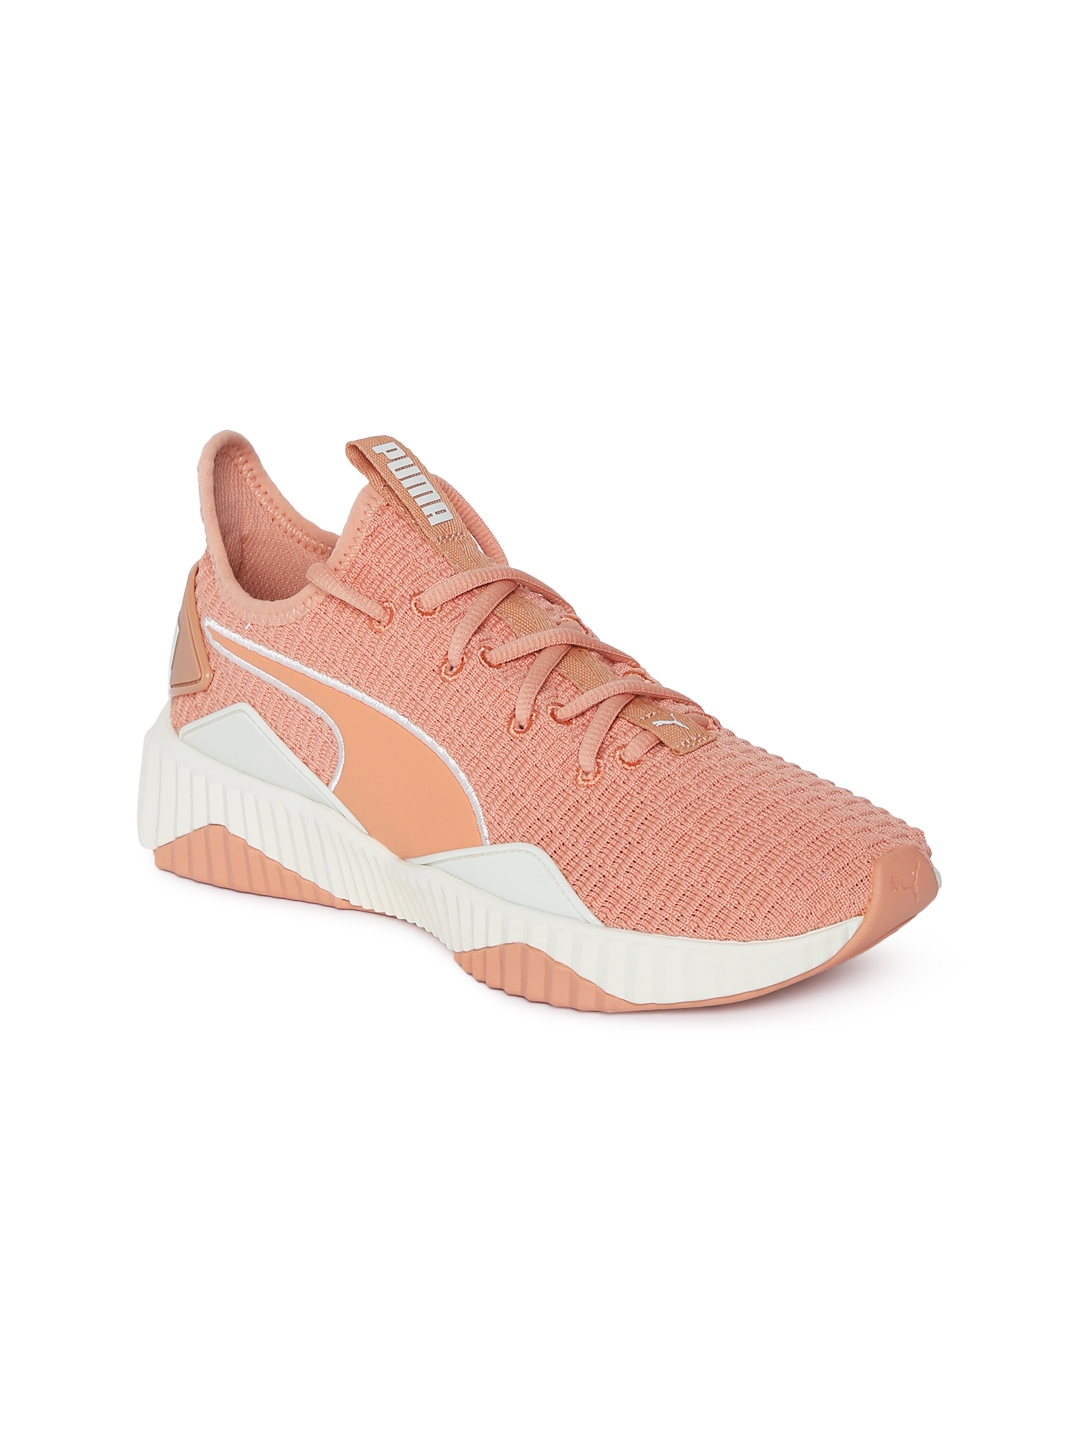 e2111aecb56 Buy Puma Women Peach Coloured Solid Defy Training Shoes - Sports ...